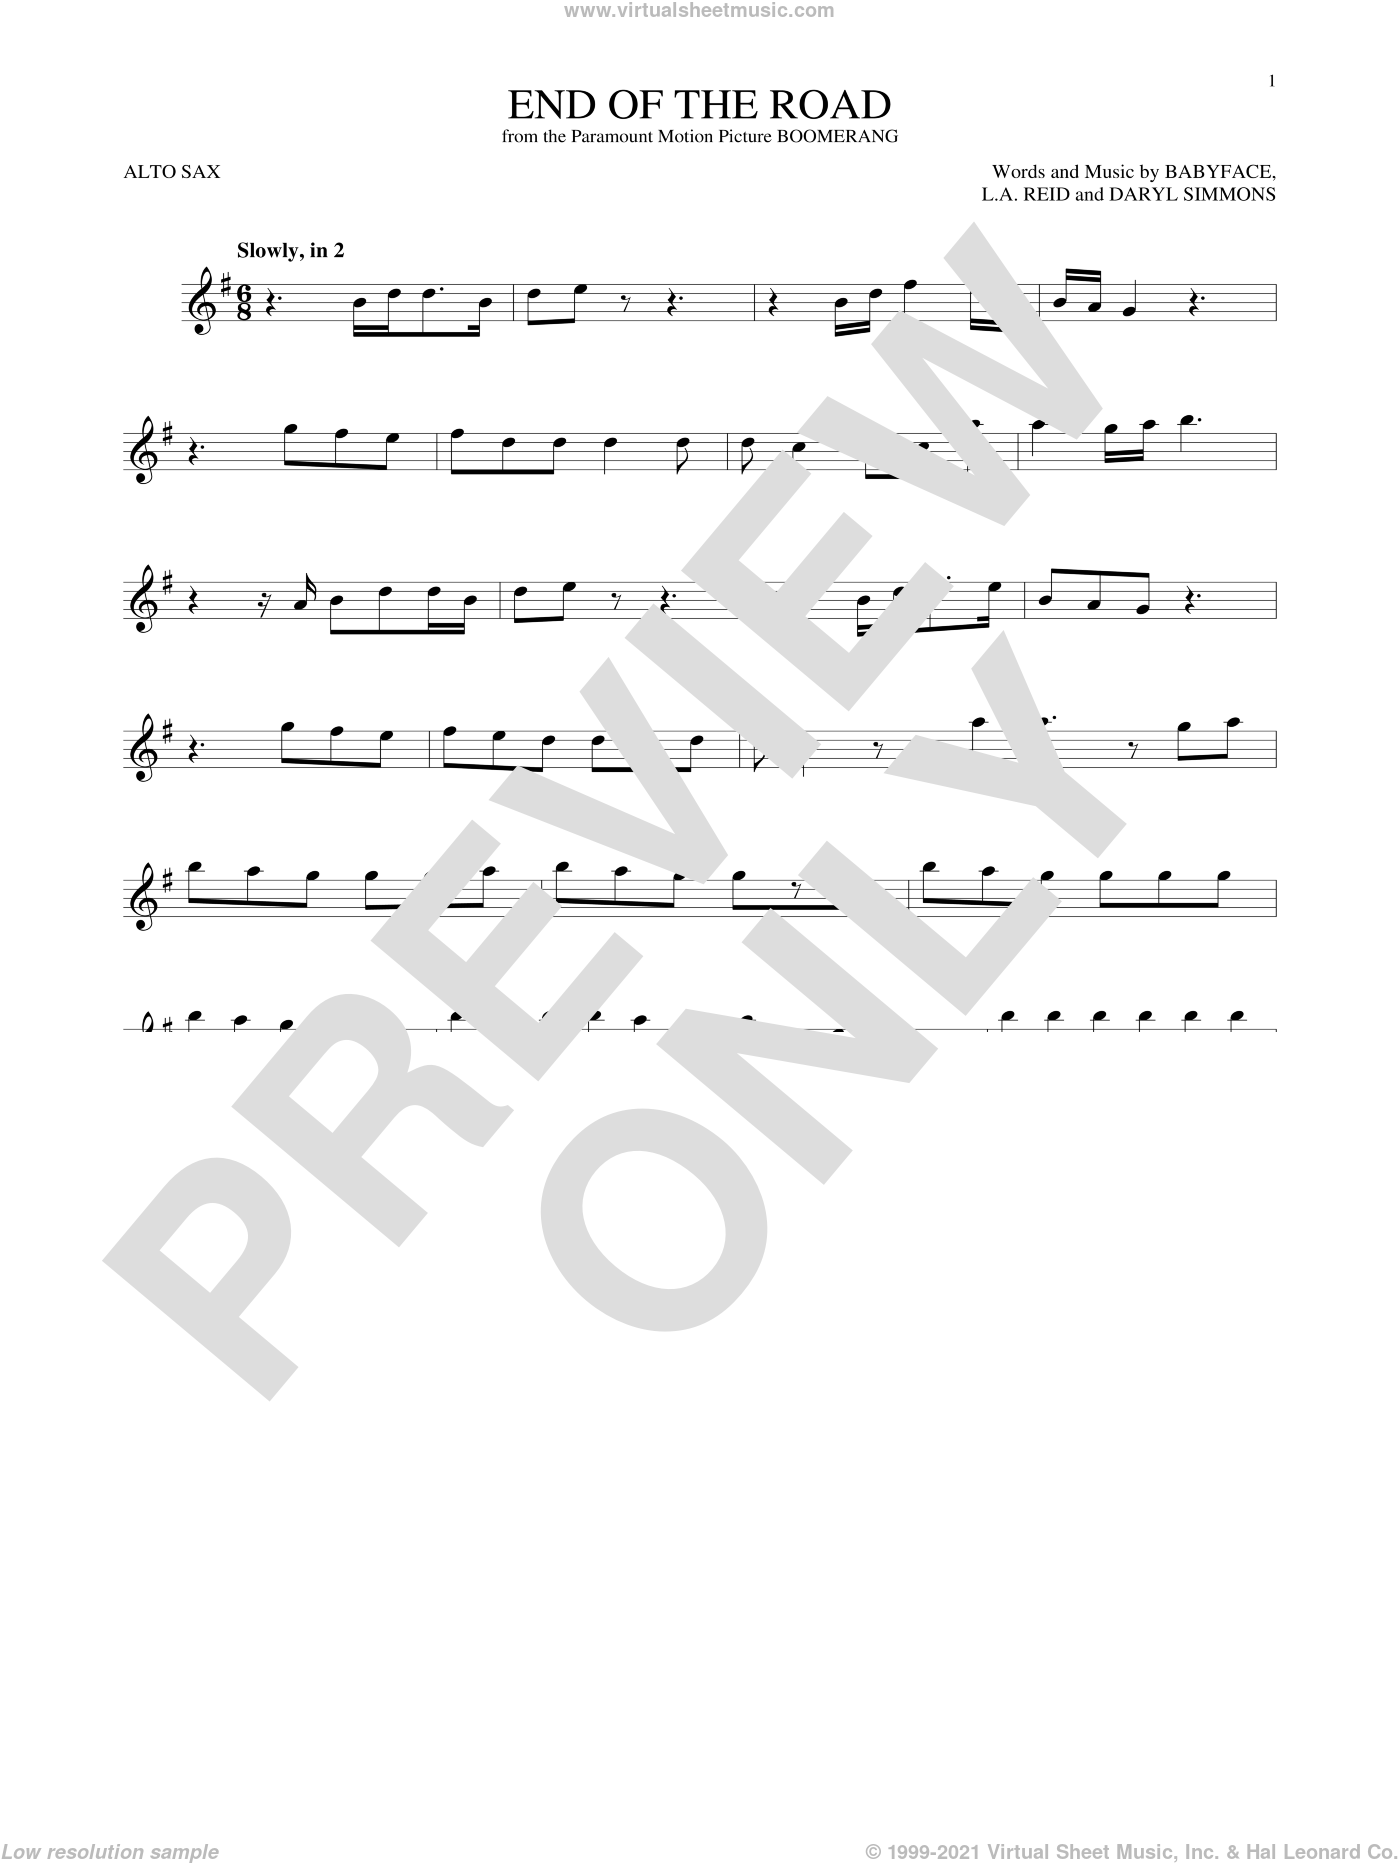 End Of The Road sheet music for alto saxophone solo ( Sax) by L.A. Reid, Boyz II Men, Babyface and Daryl Simmons. Score Image Preview.